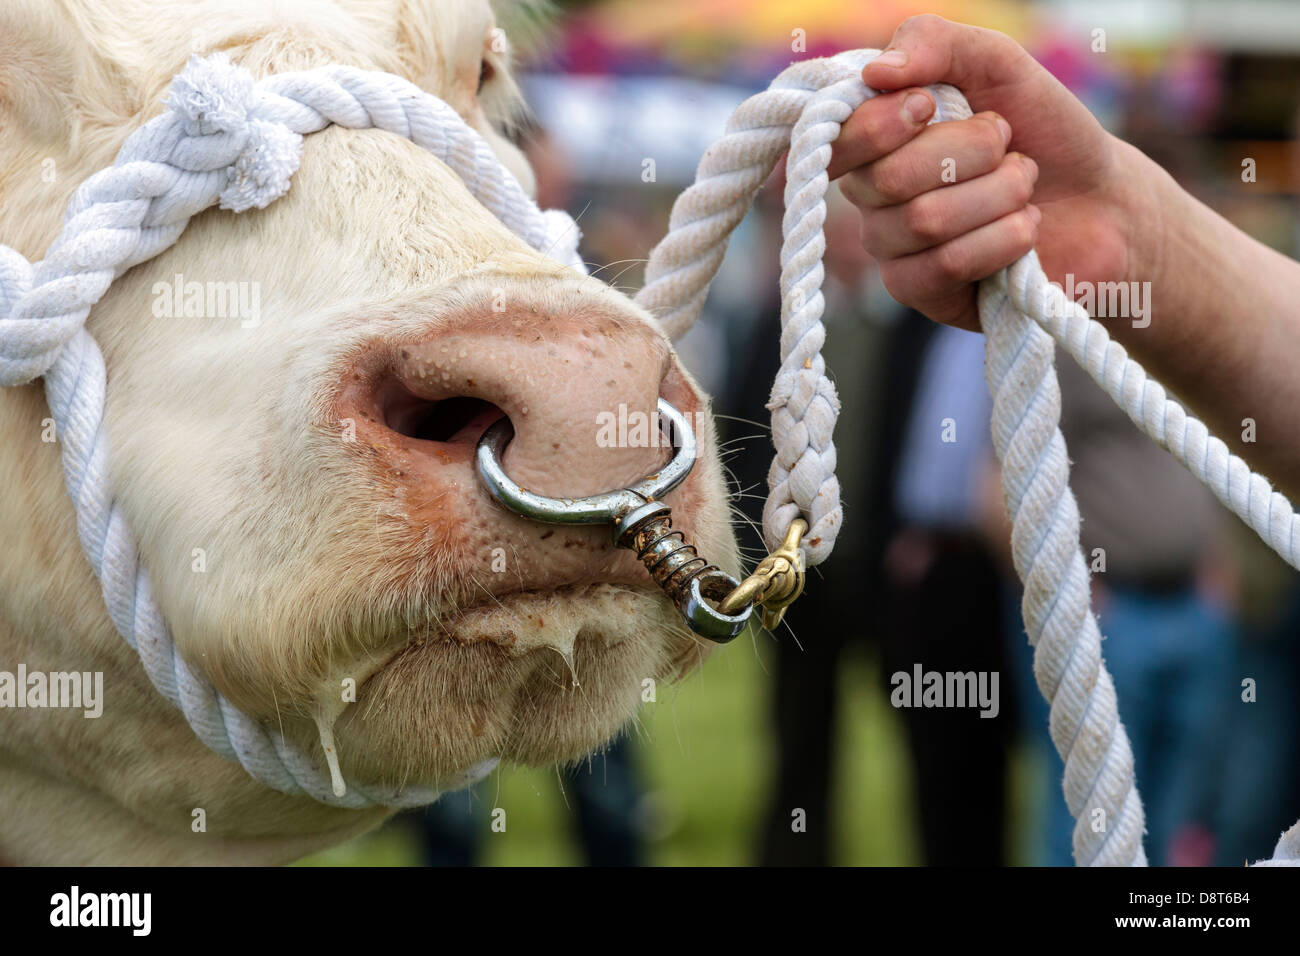 Charolais Bull Being Lead By A Rope And A Nose Ring Scotland Uk